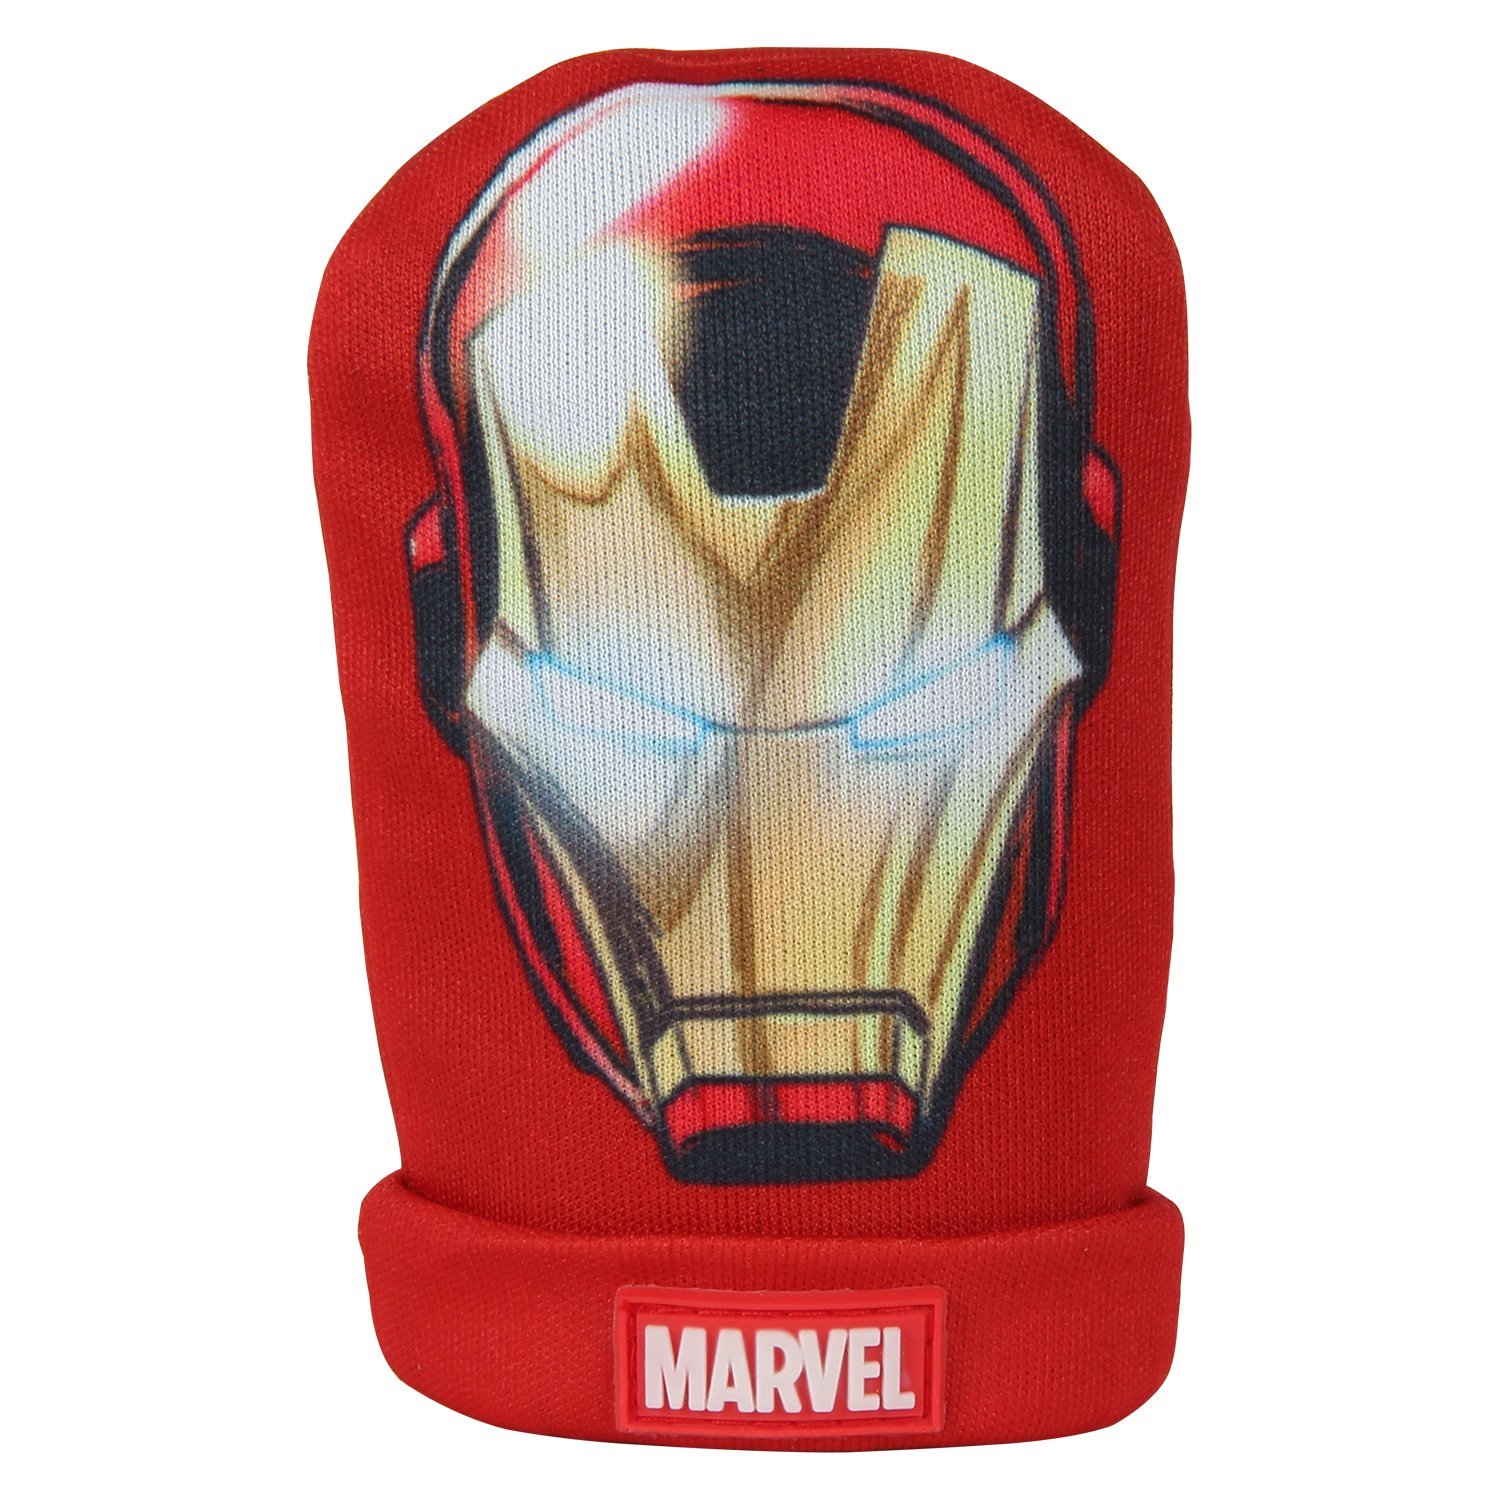 Pilot MVL-0101 Marvel Spiderman Shift Knob Cover